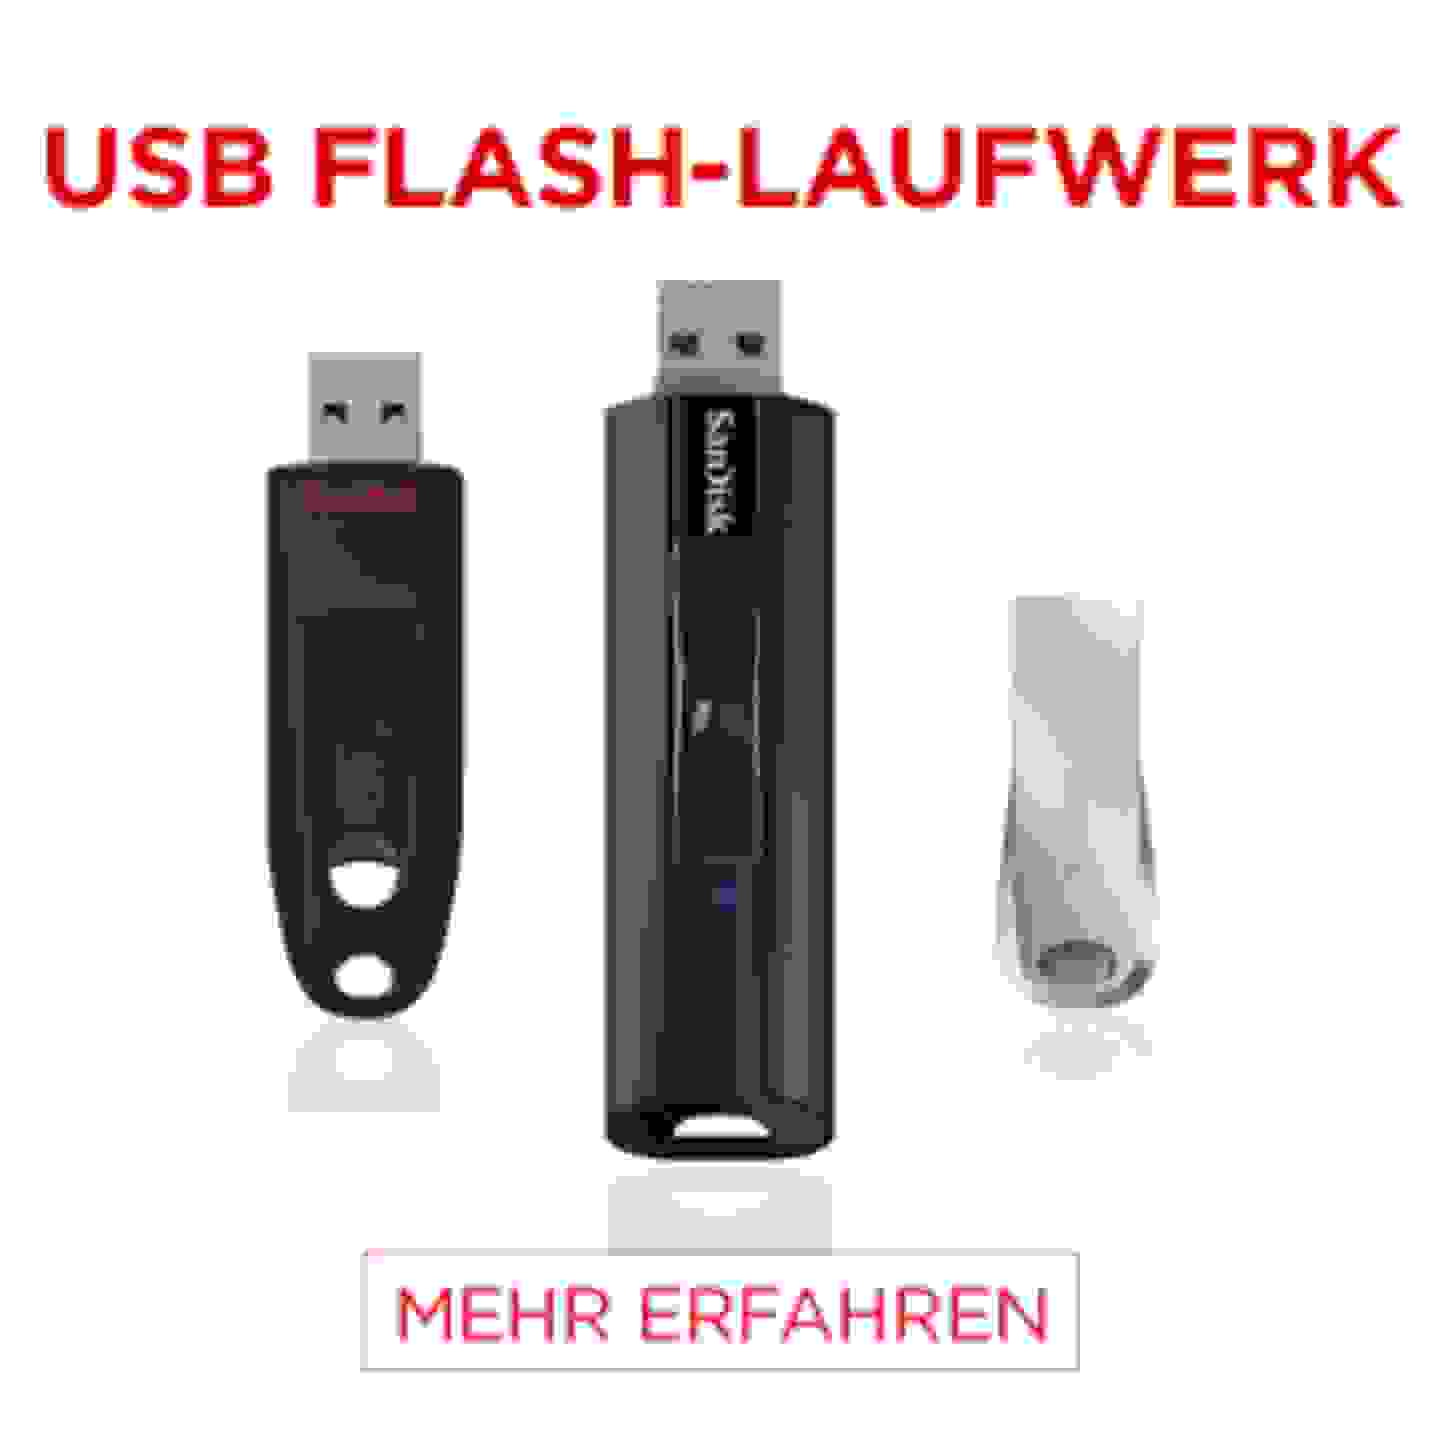 USB Flash-Laufwerk